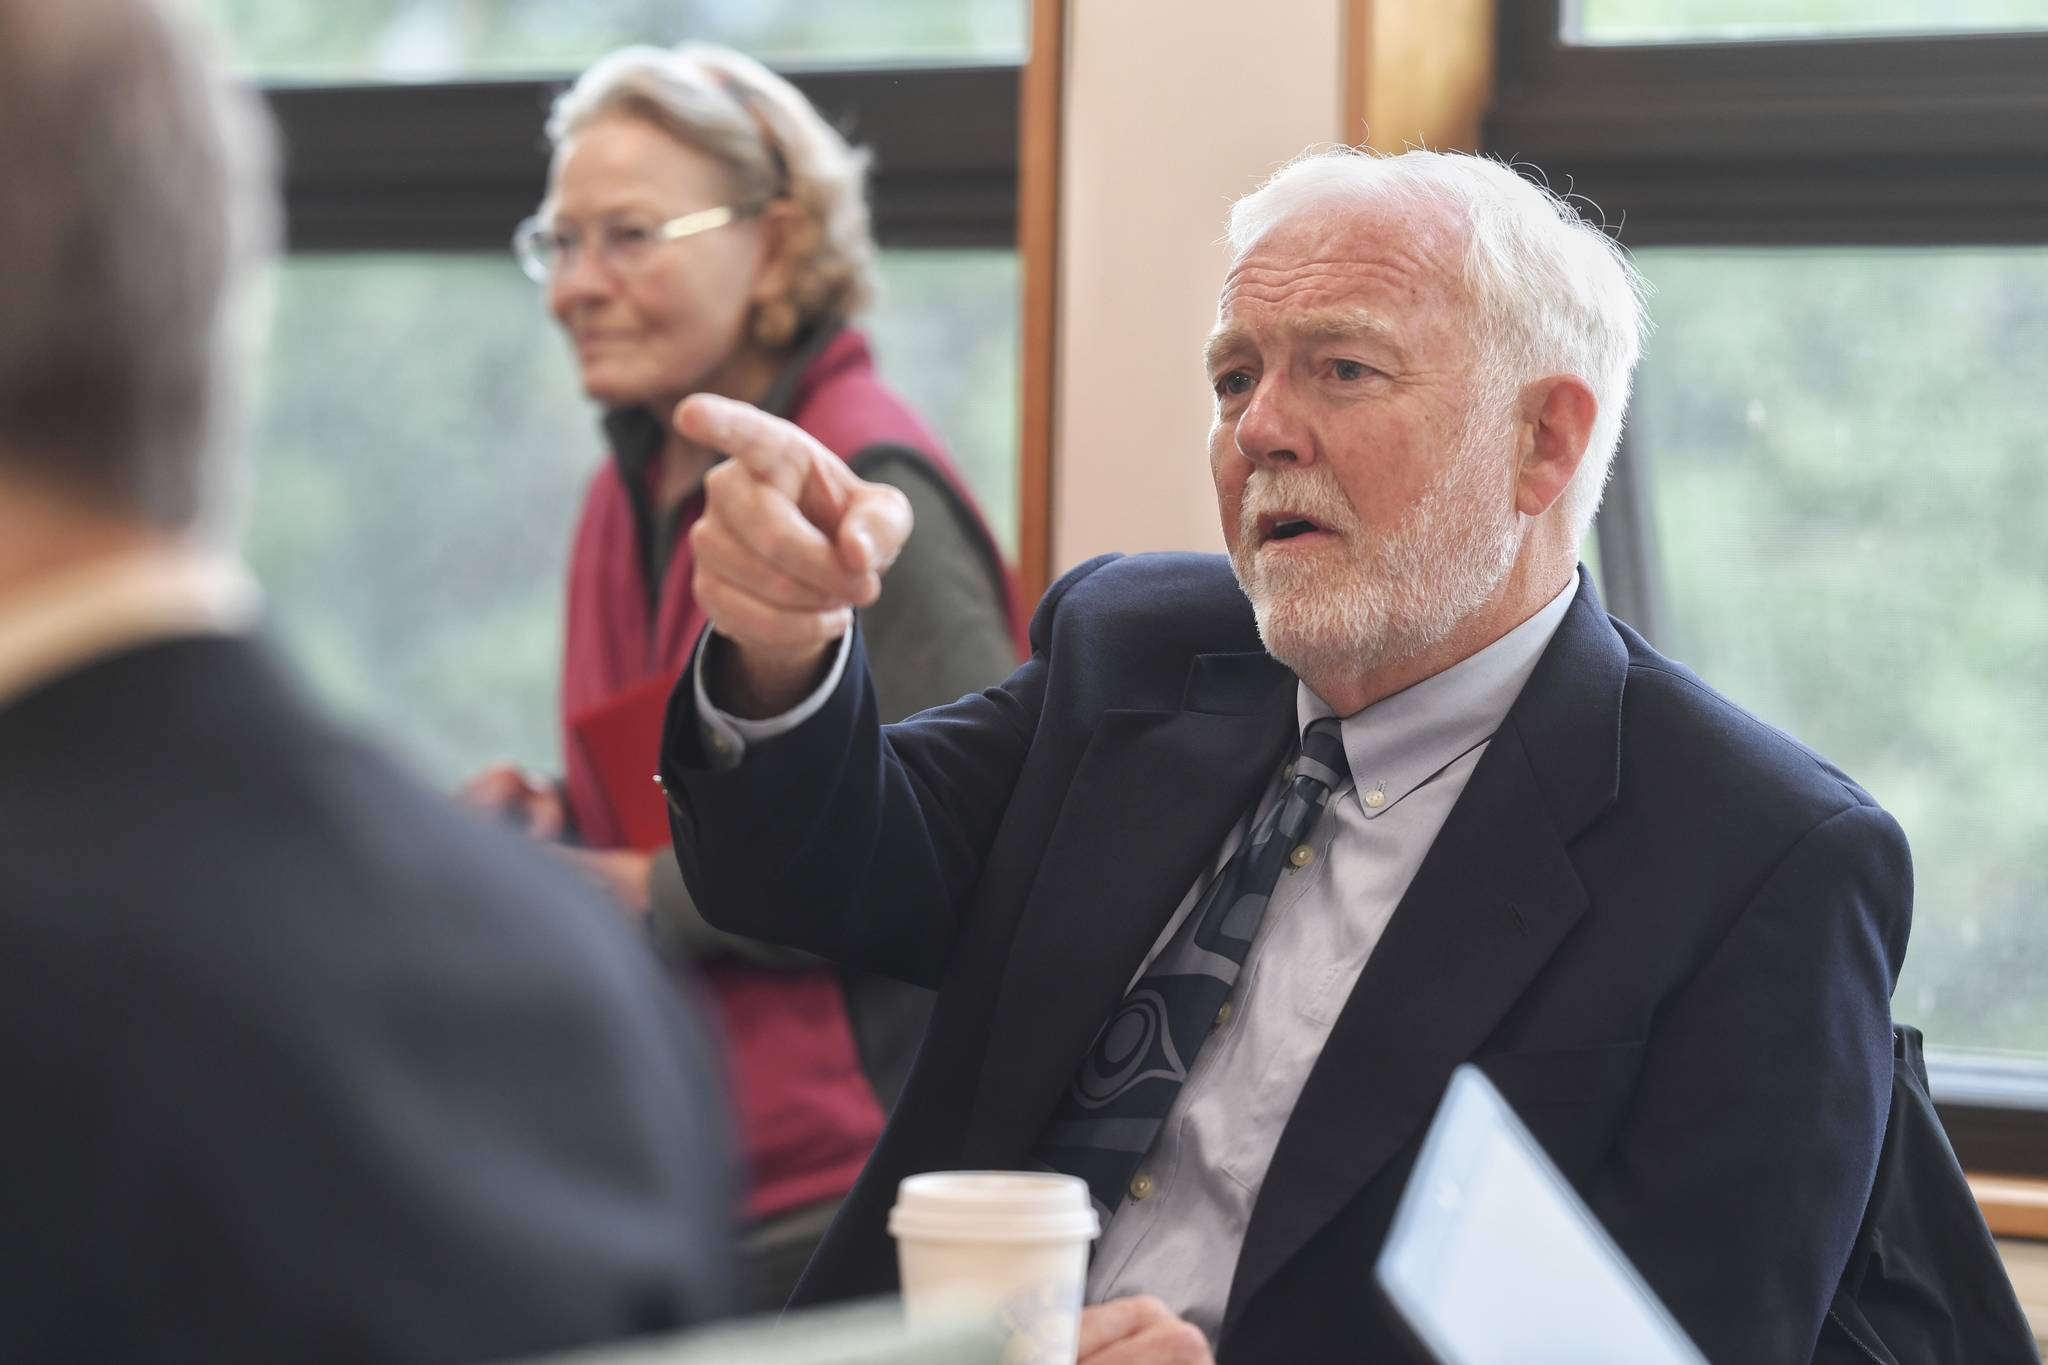 Dr. Richard Caulfield, Chancellor at the University of Alaska Southeast, watches an online meeting being held at UA campuses around the state on Gov. Mike Dunleavy's budget cuts on Monday, July 15, 2019. (Michael Penn | Juneau Empire File)